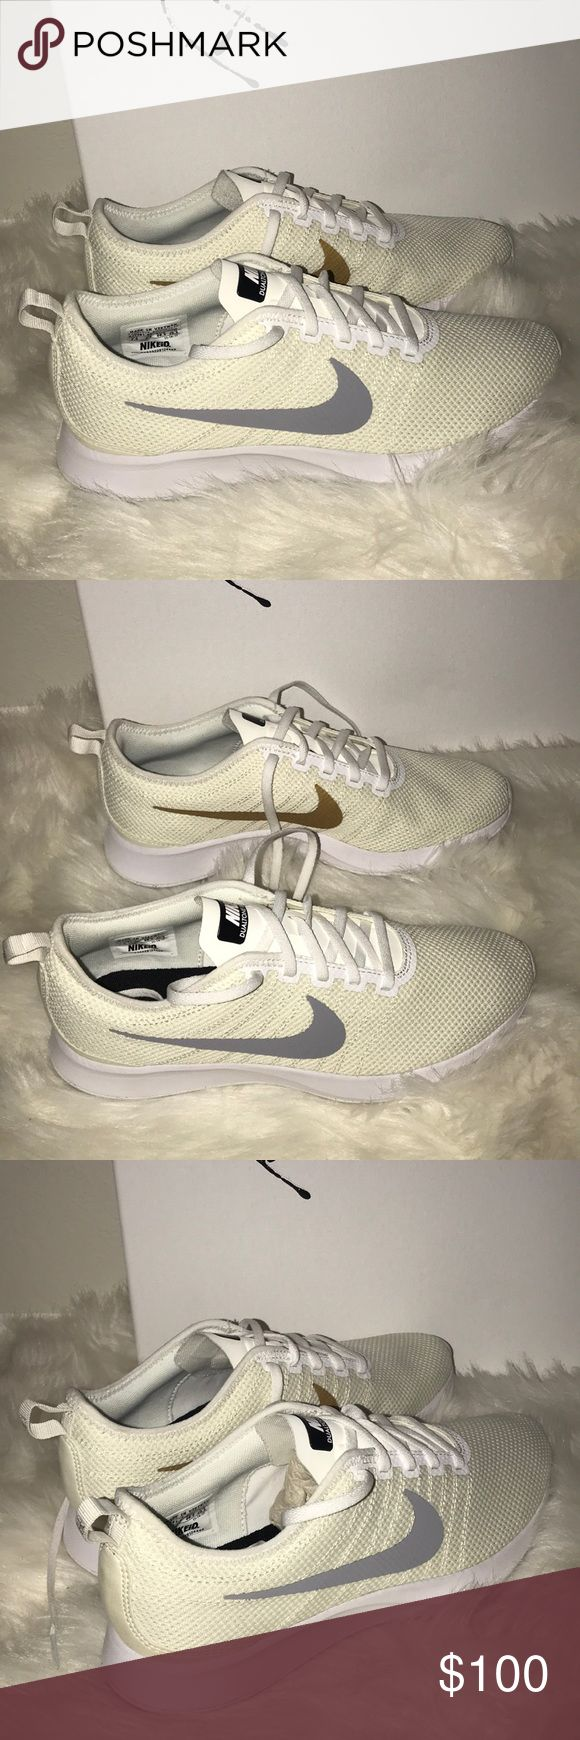 Nike id womens running shoes Brand new without box. Shoes are a men's size 7.5. Which is a women's size 9. I  Have added a sizing chart for your convenience. Nike Shoes Sneakers